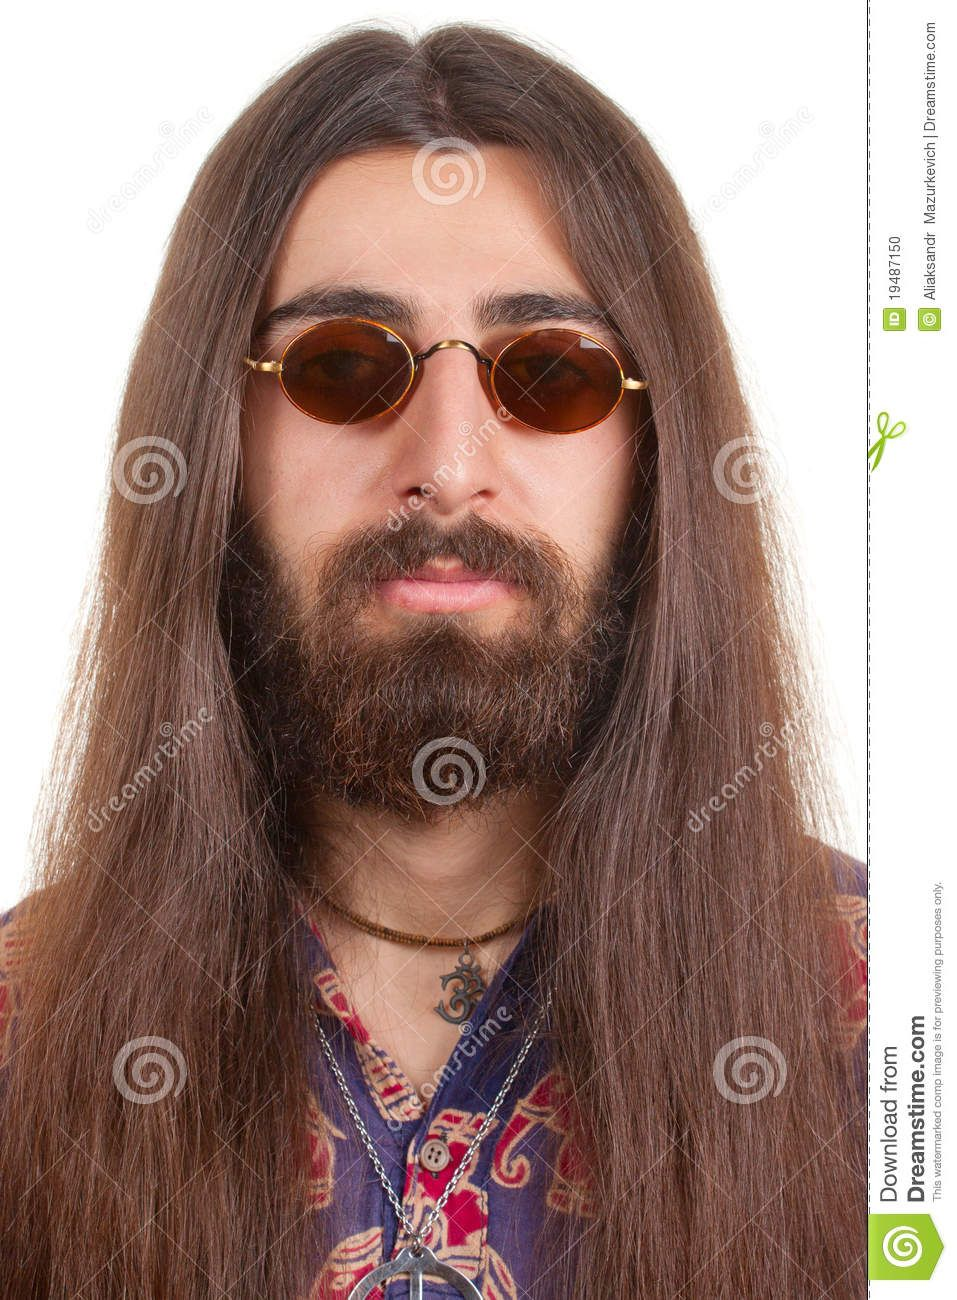 long-haired hippie man stock